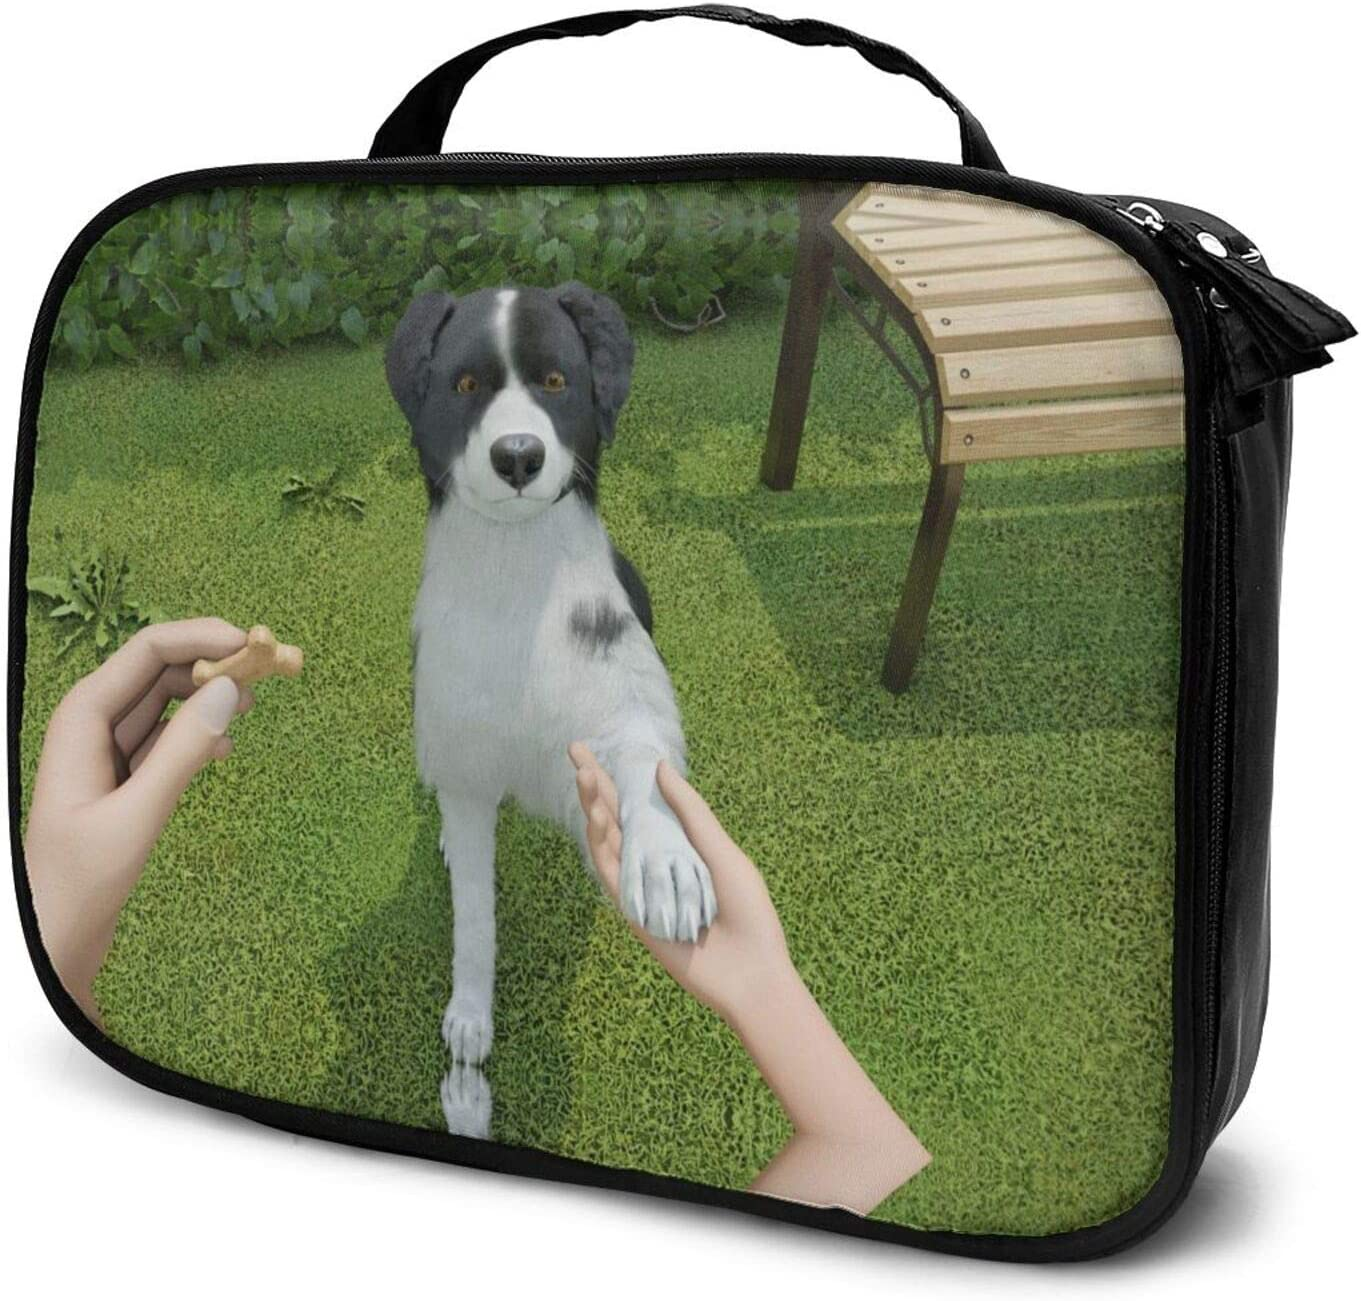 Shake Hands With New life The Dog Case Cosmeti Makeup Train Cheap super special price Travel